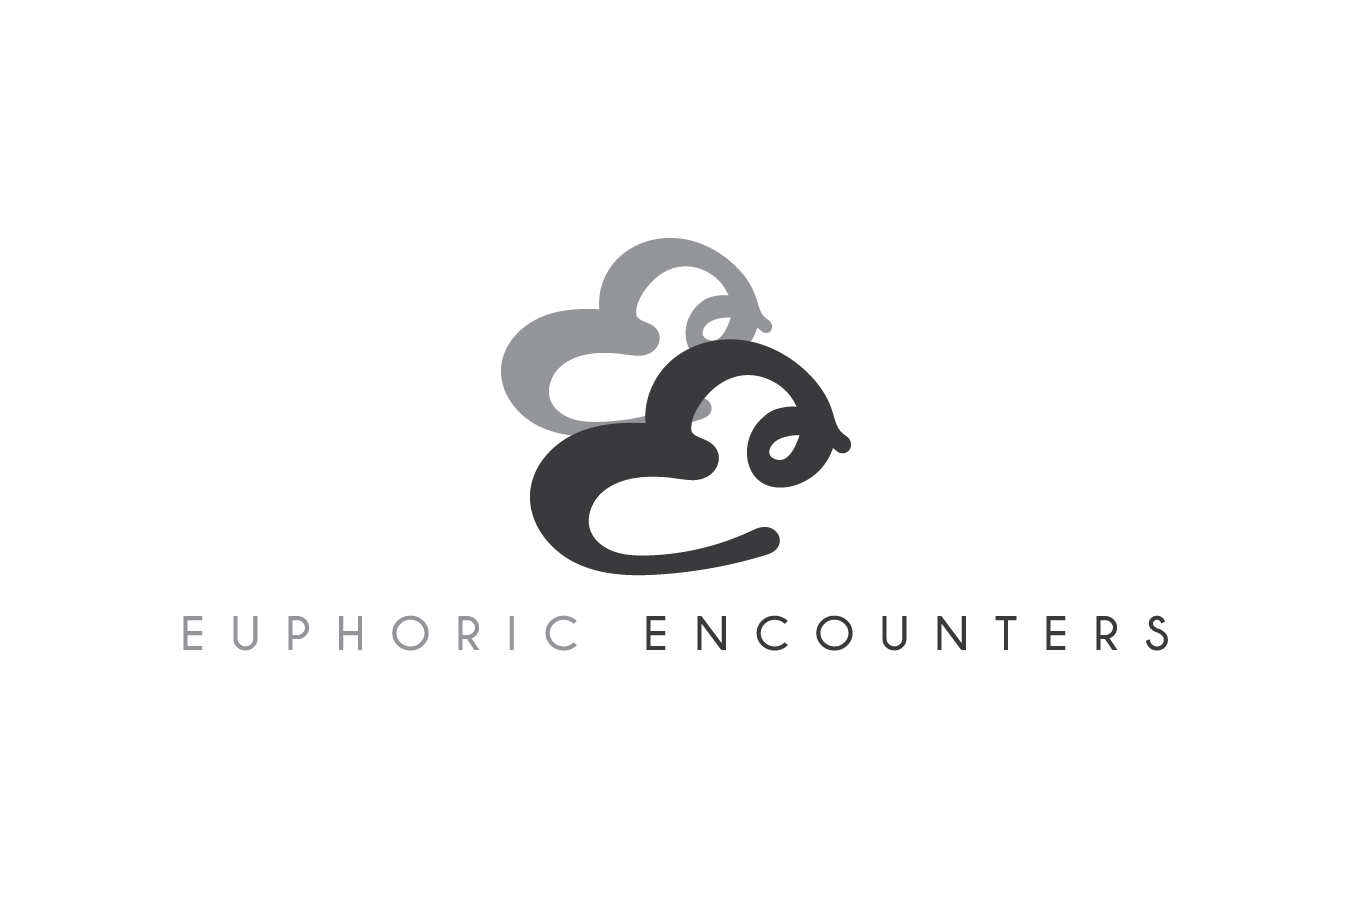 EUPHORIC ENCOUNTERS